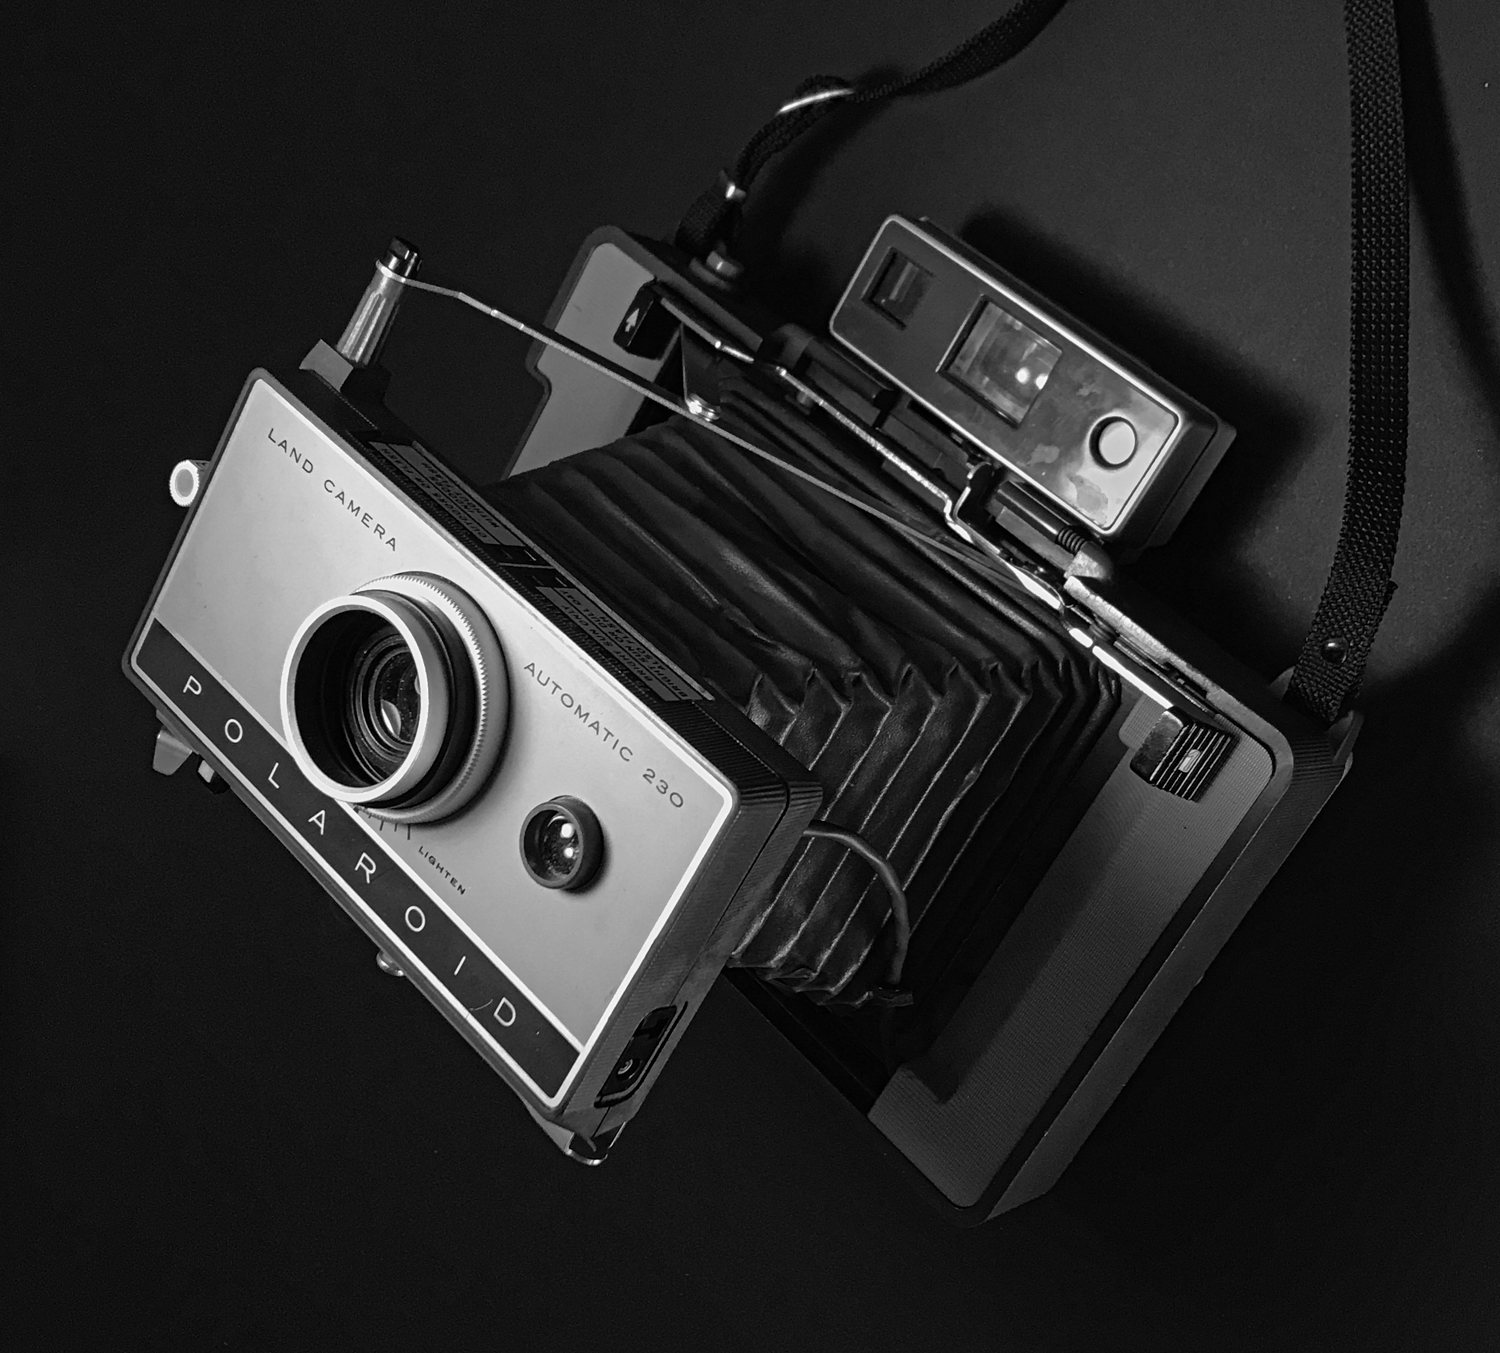 My first ever camera was a Polaroid, but it wasn't as fancy as this.